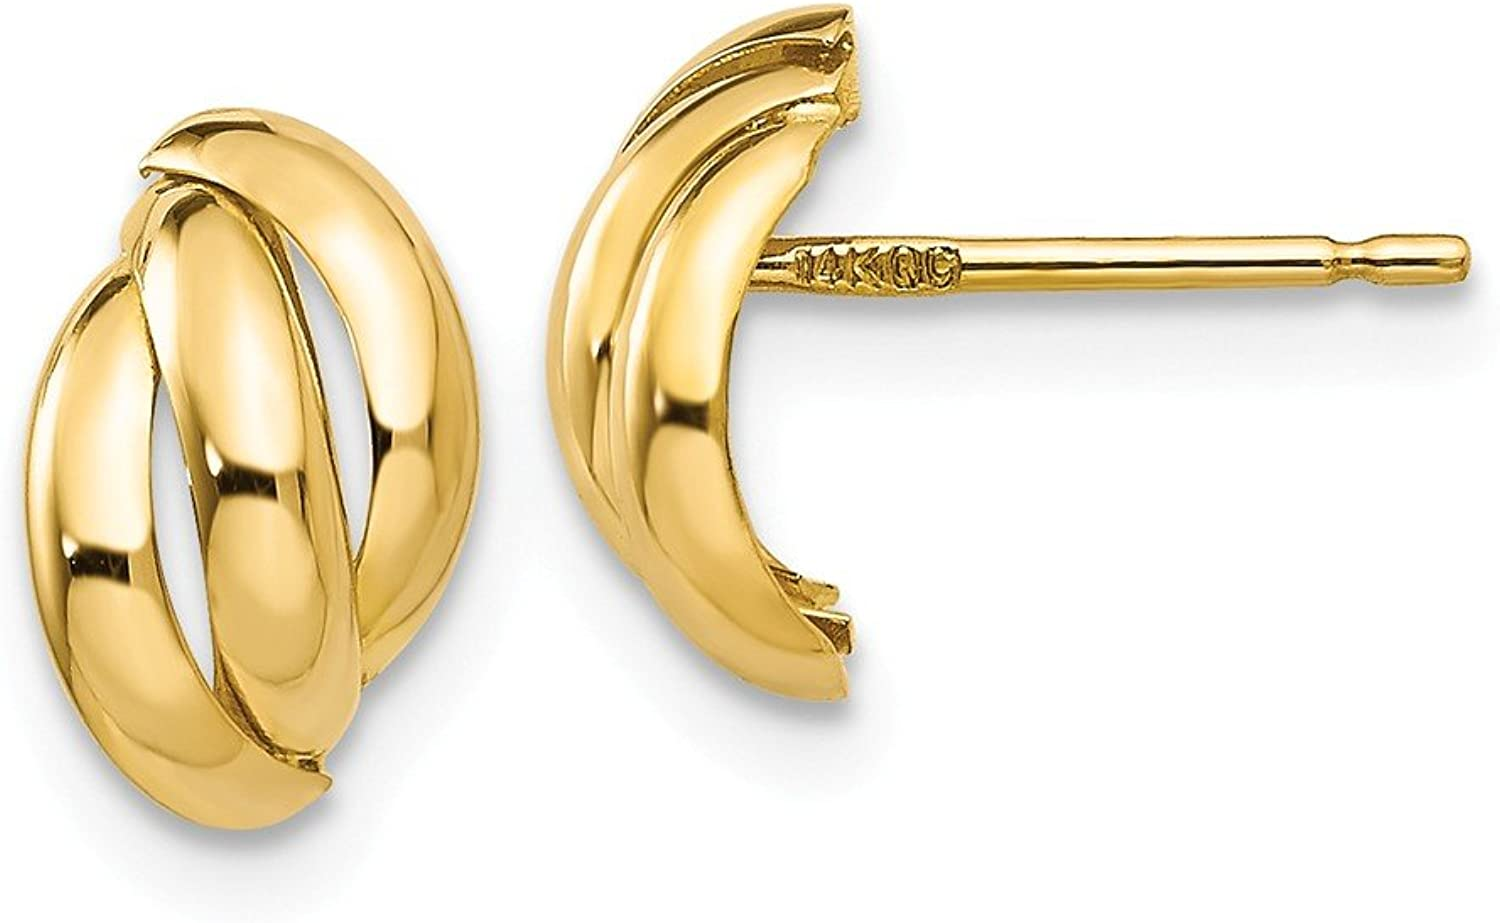 Beautiful Yellow gold 14K Yellowgold 14k Polished Fancy Post Earrings